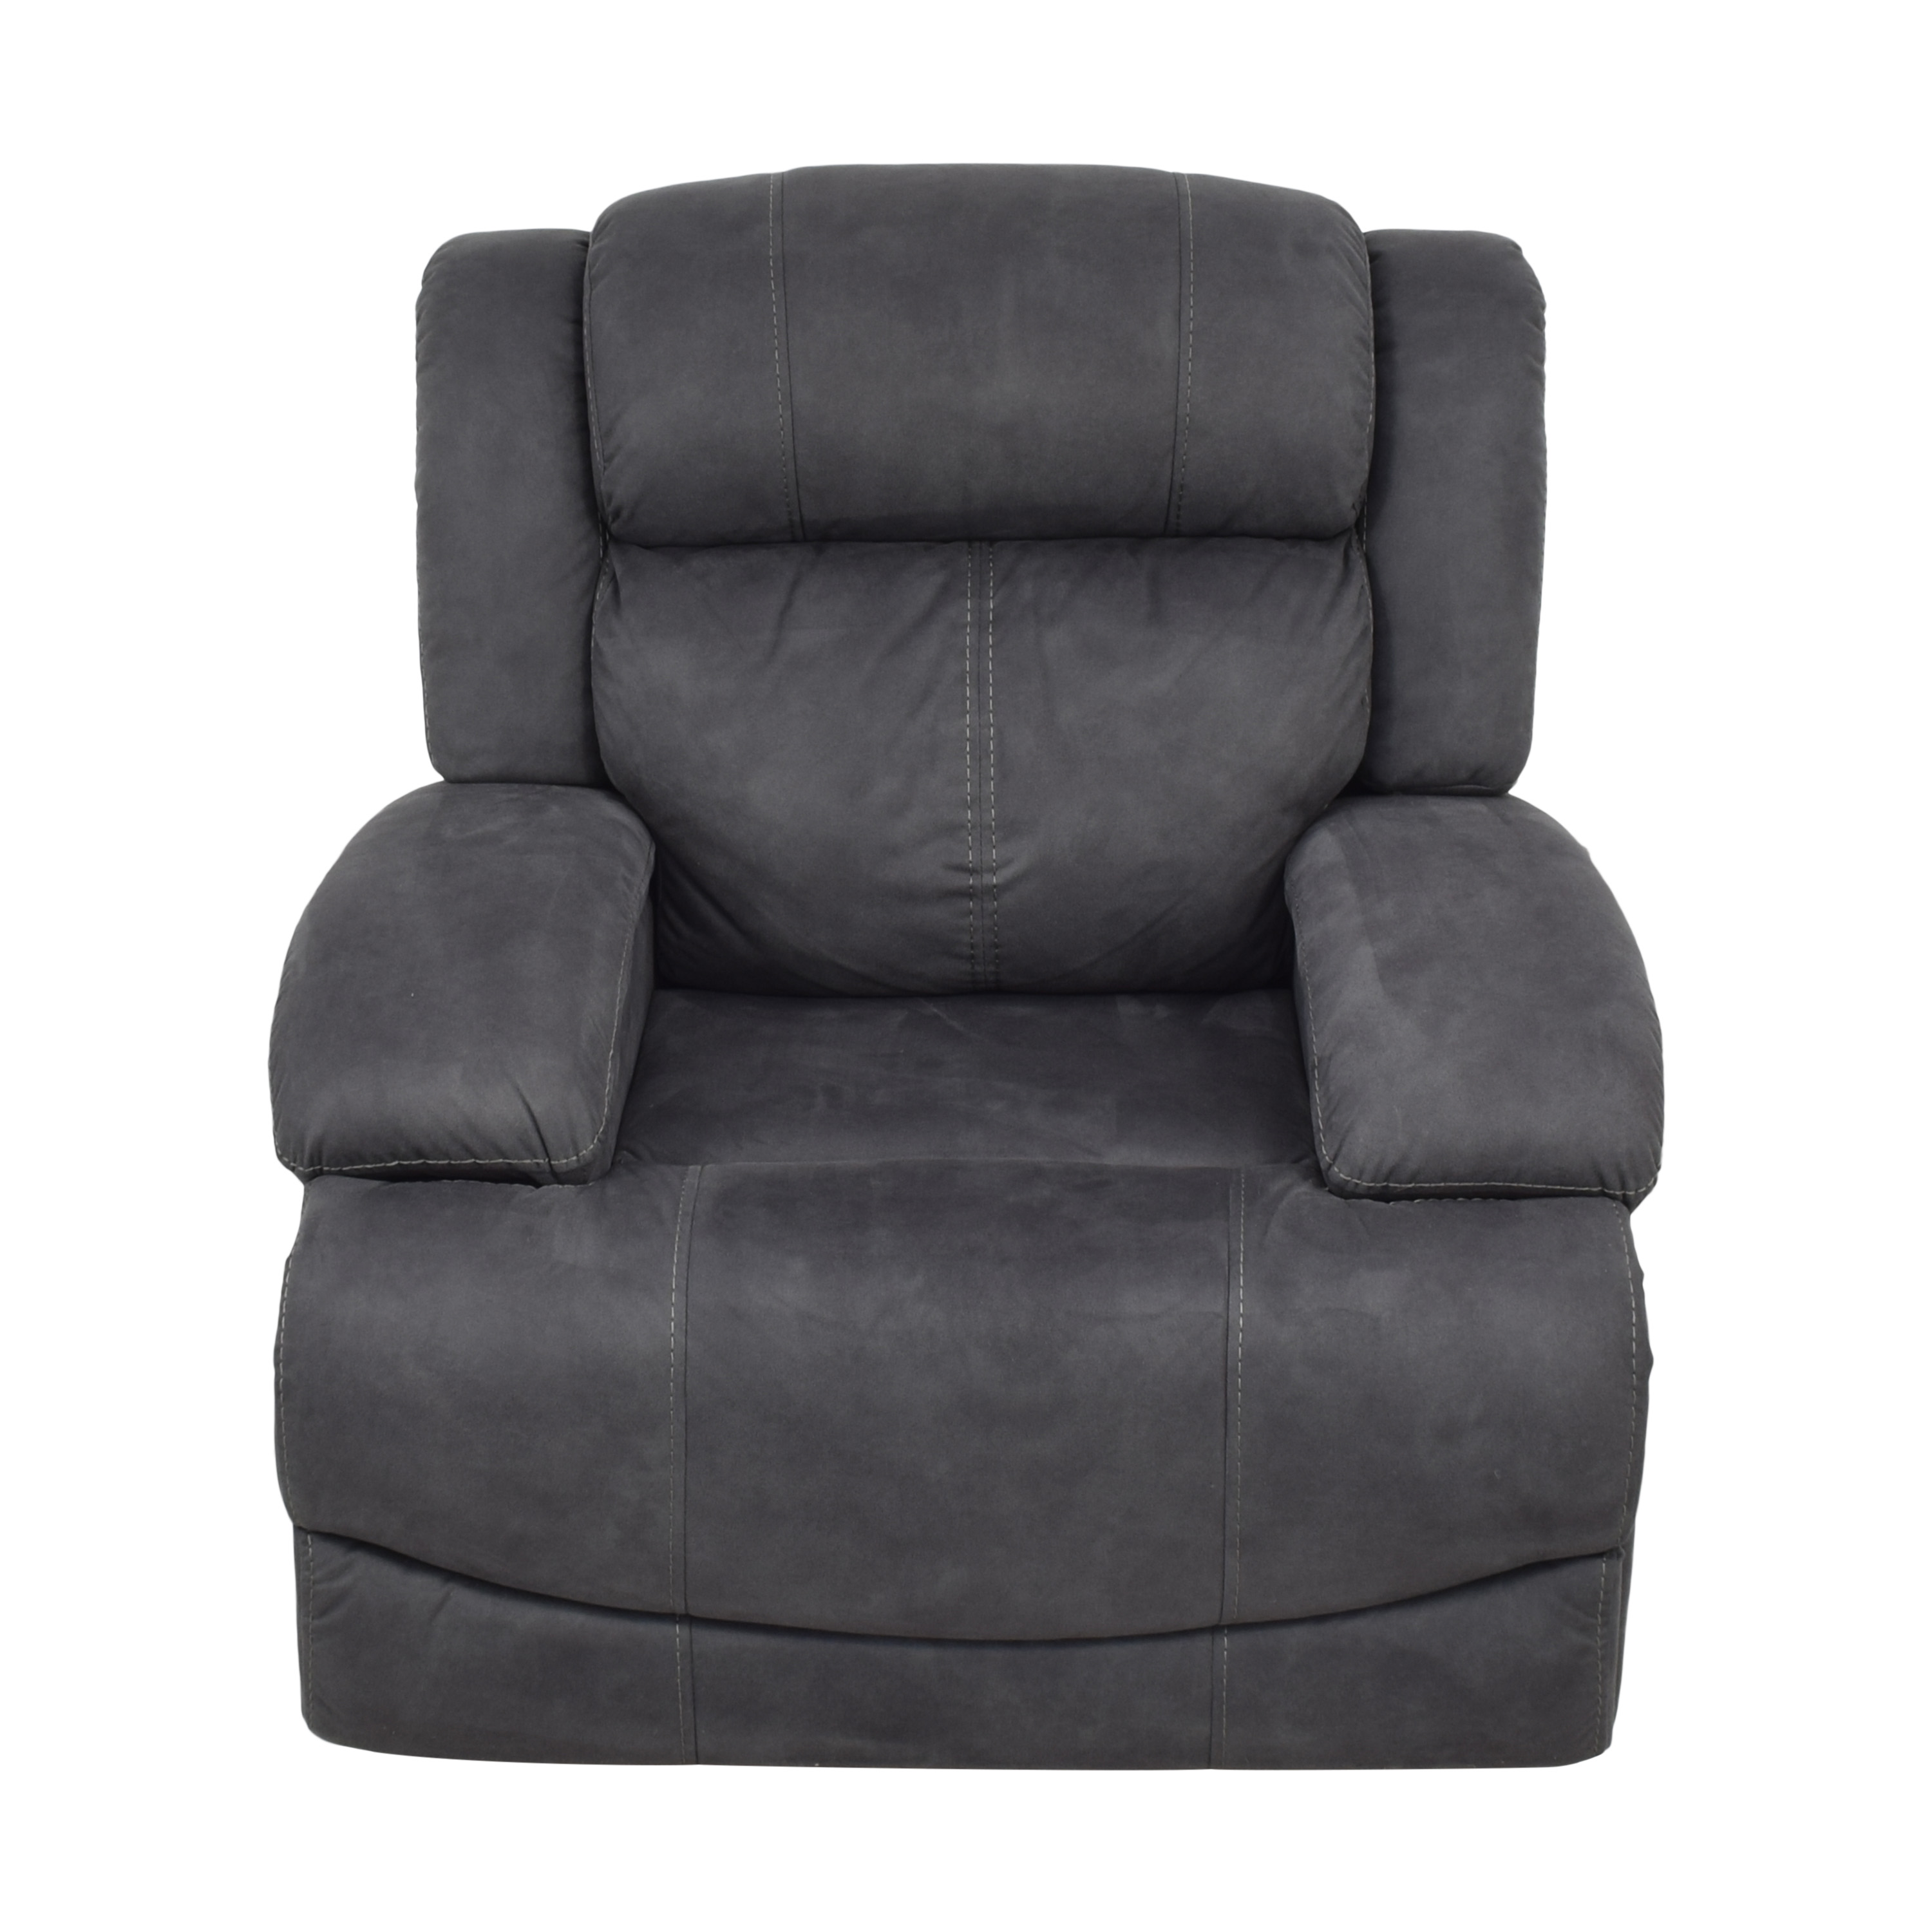 Raymour & Flanigan Raymour & Flanigan Quincey Glider Power Recliner nj